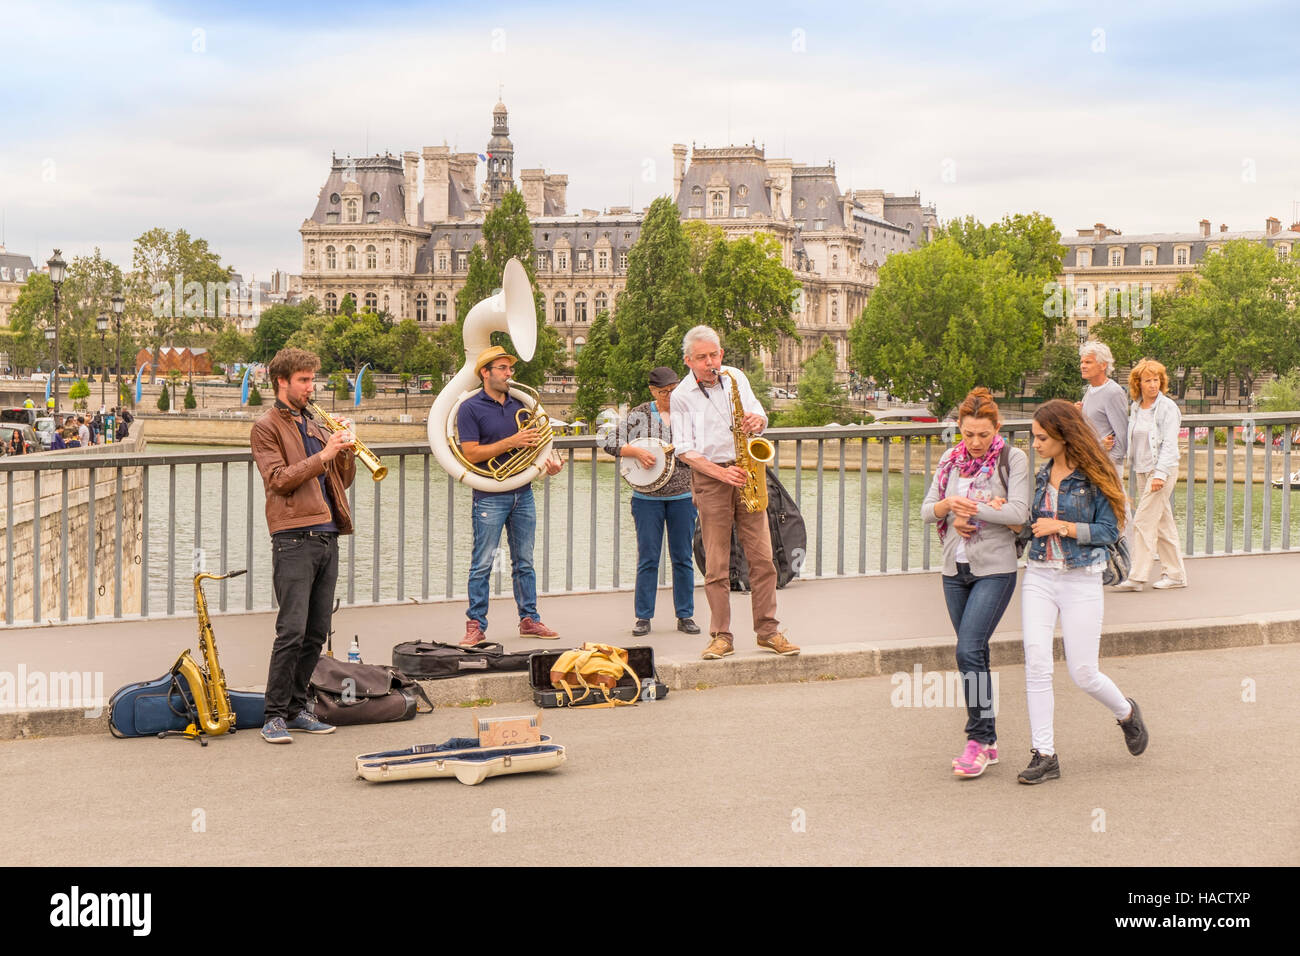 street musicians and tourists on pont saint-louis bridge, town hall (hotel de ville) in the background - Stock Image